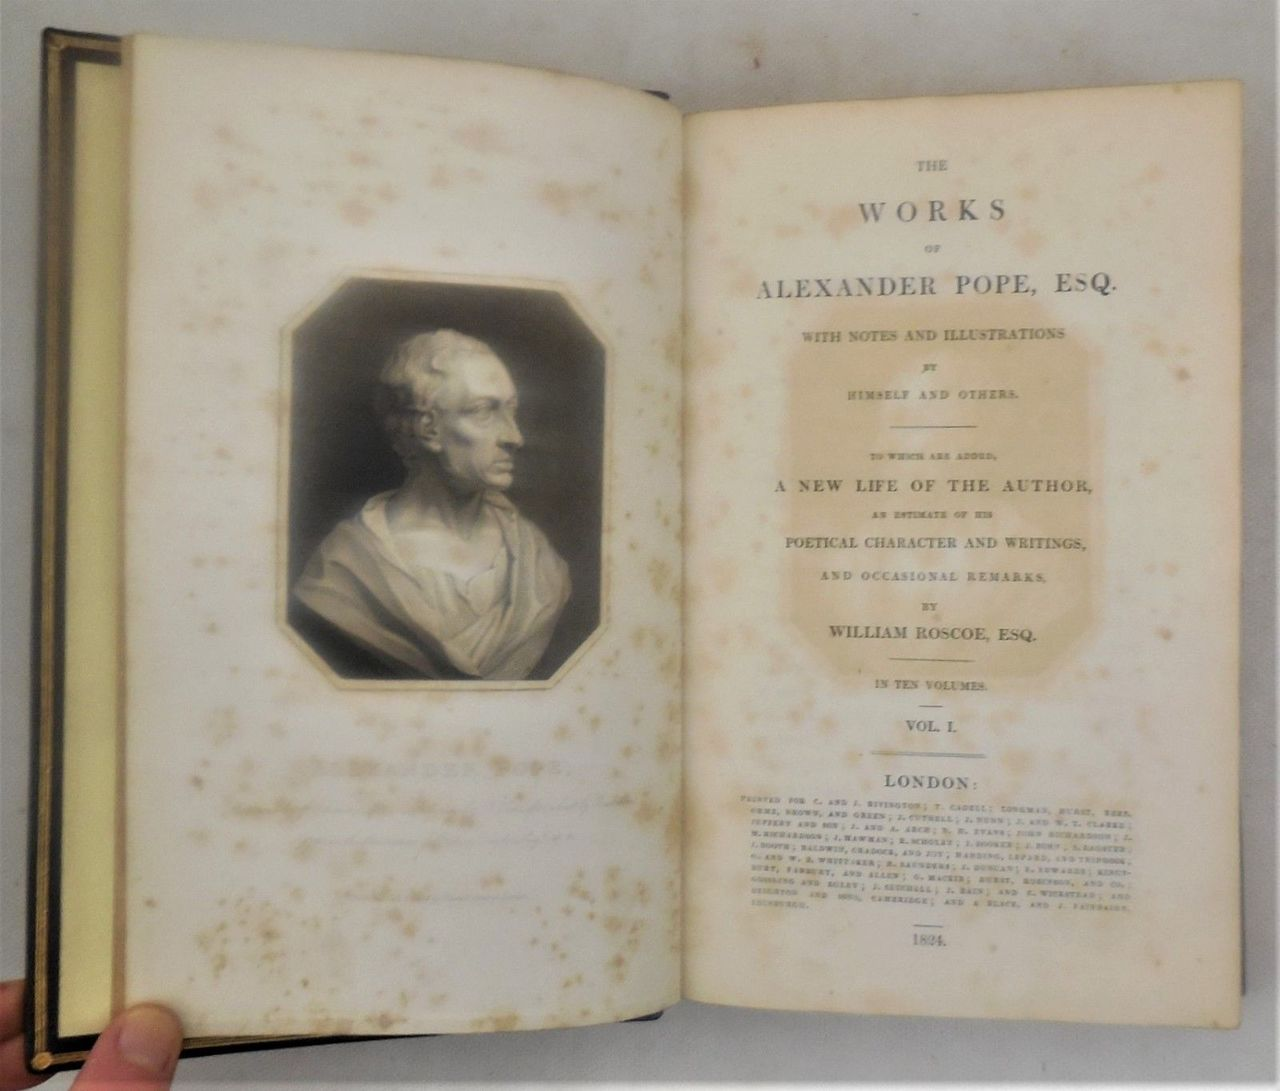 THE WORKS OF ALEXANDER POPE, by William Roscoe - 1824 [10 Vols]